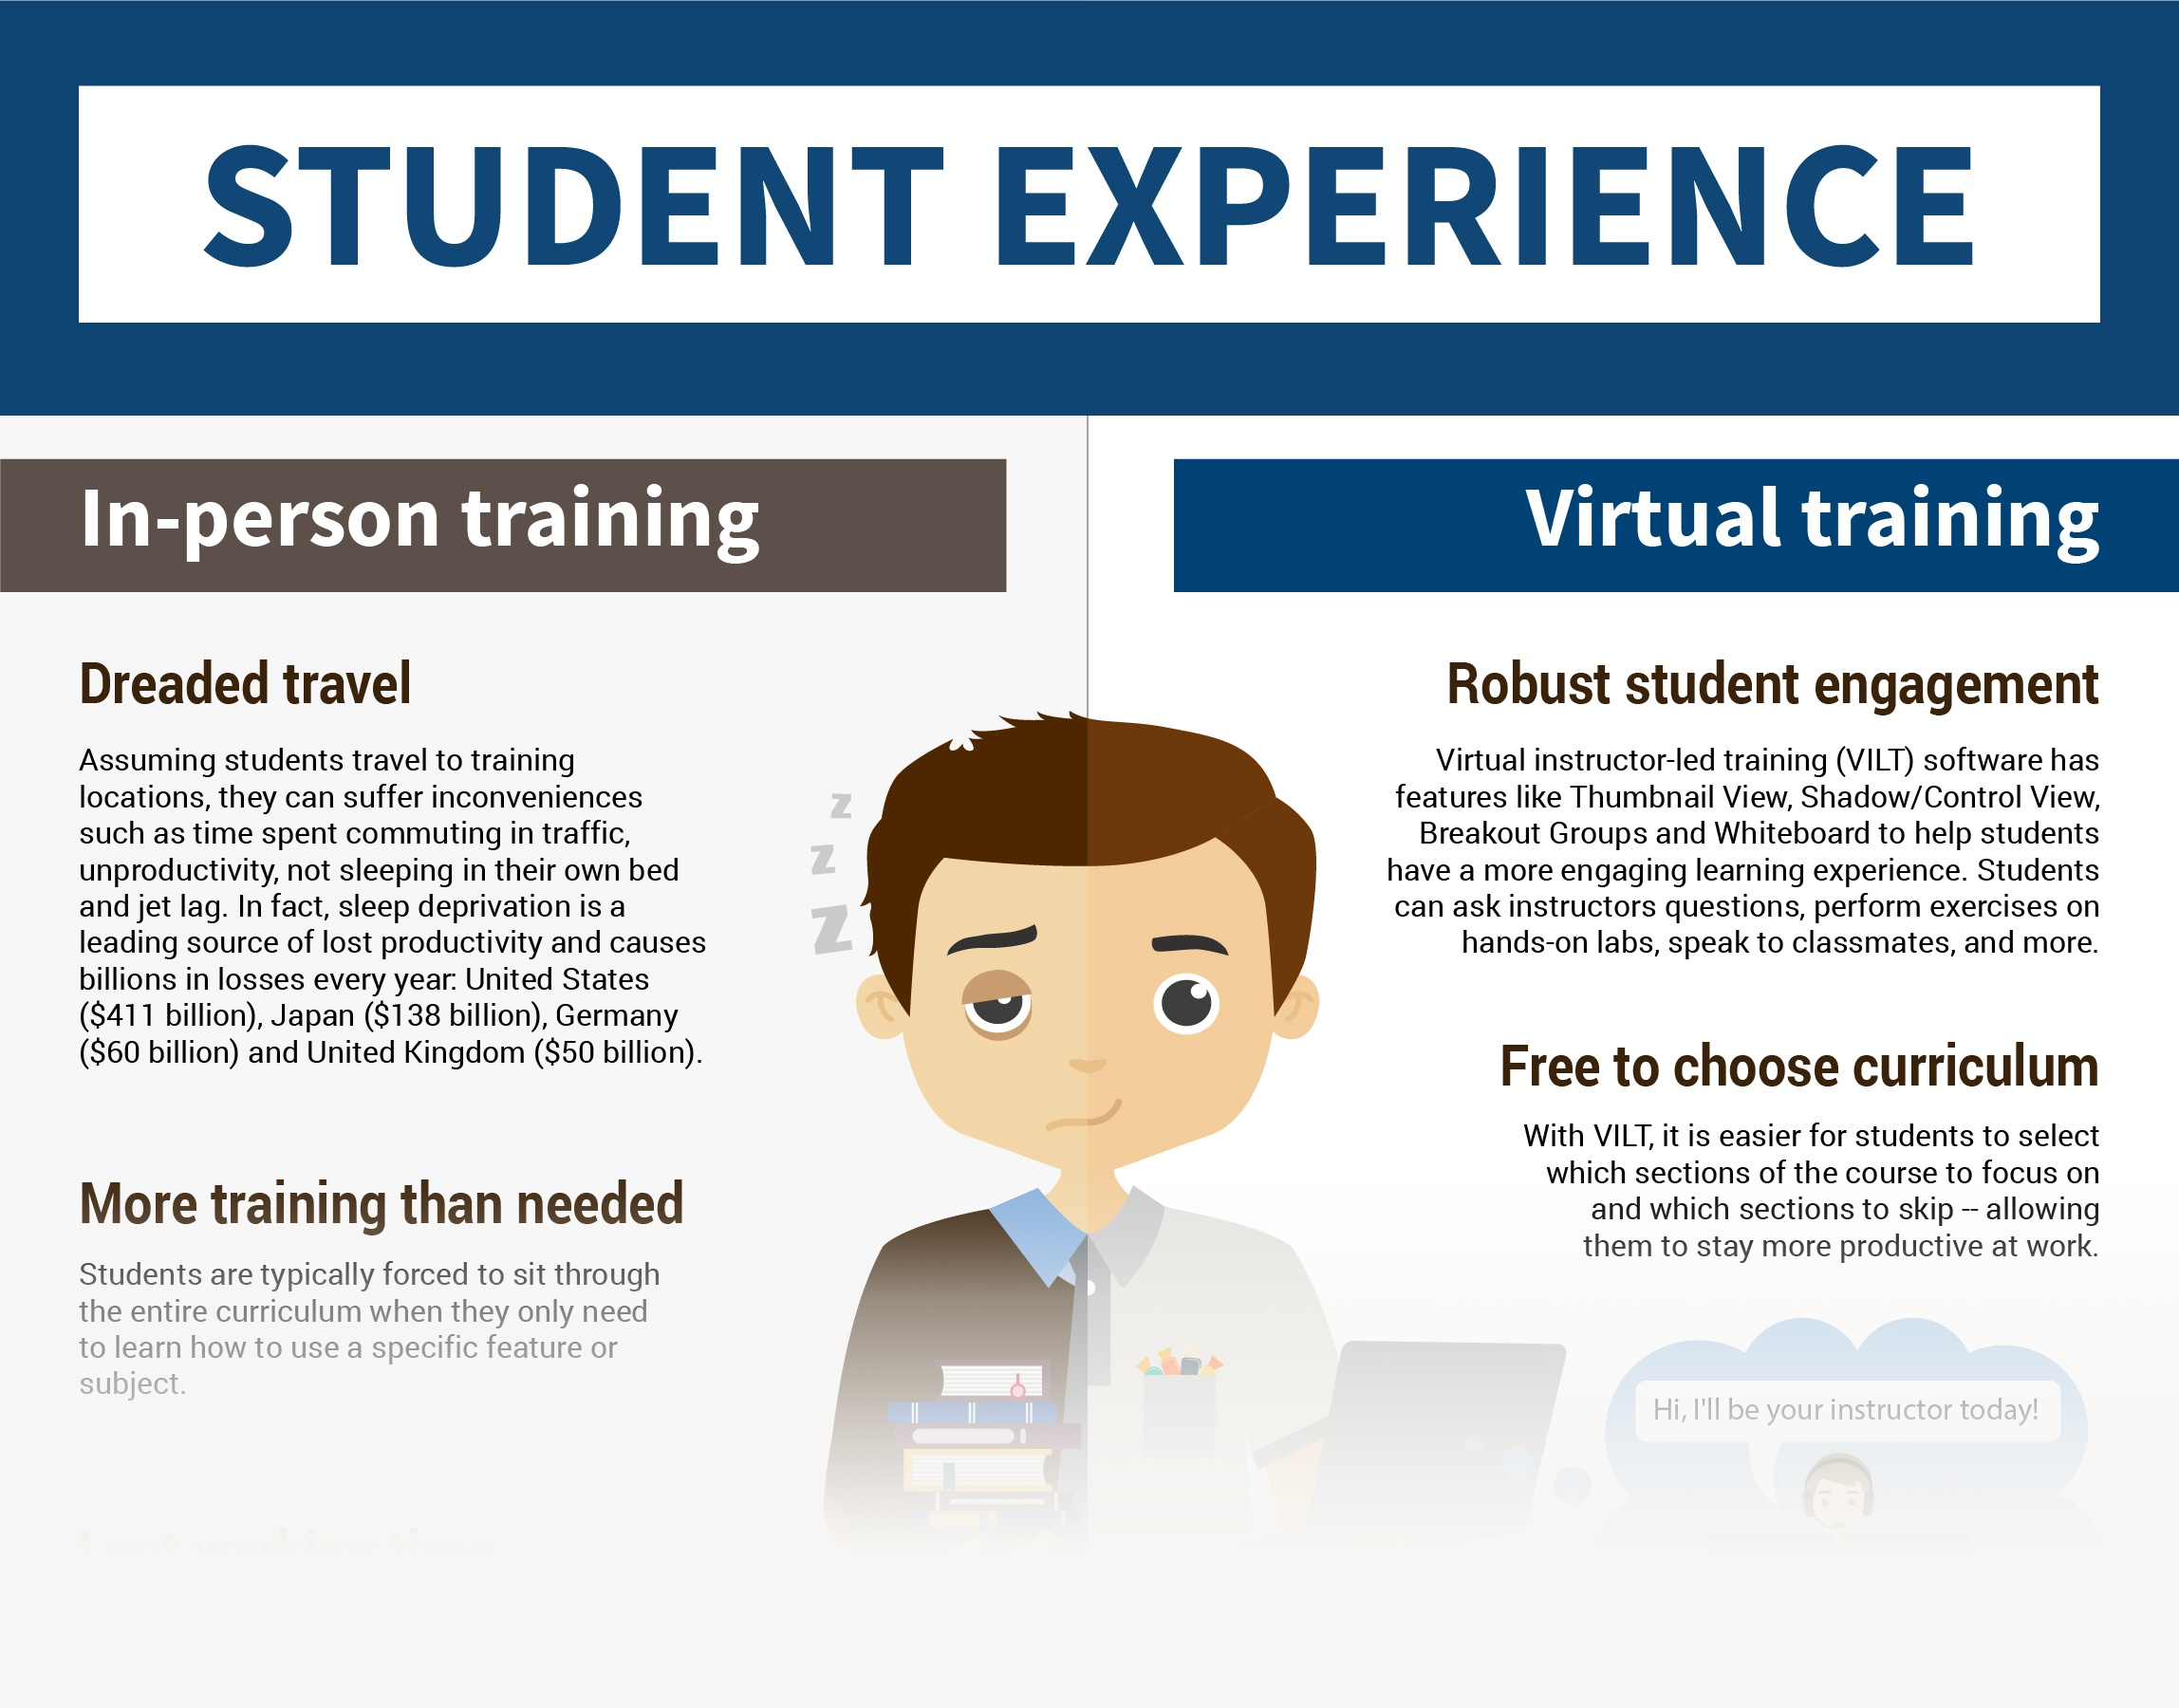 Online vs. In-Person Student Training - Final